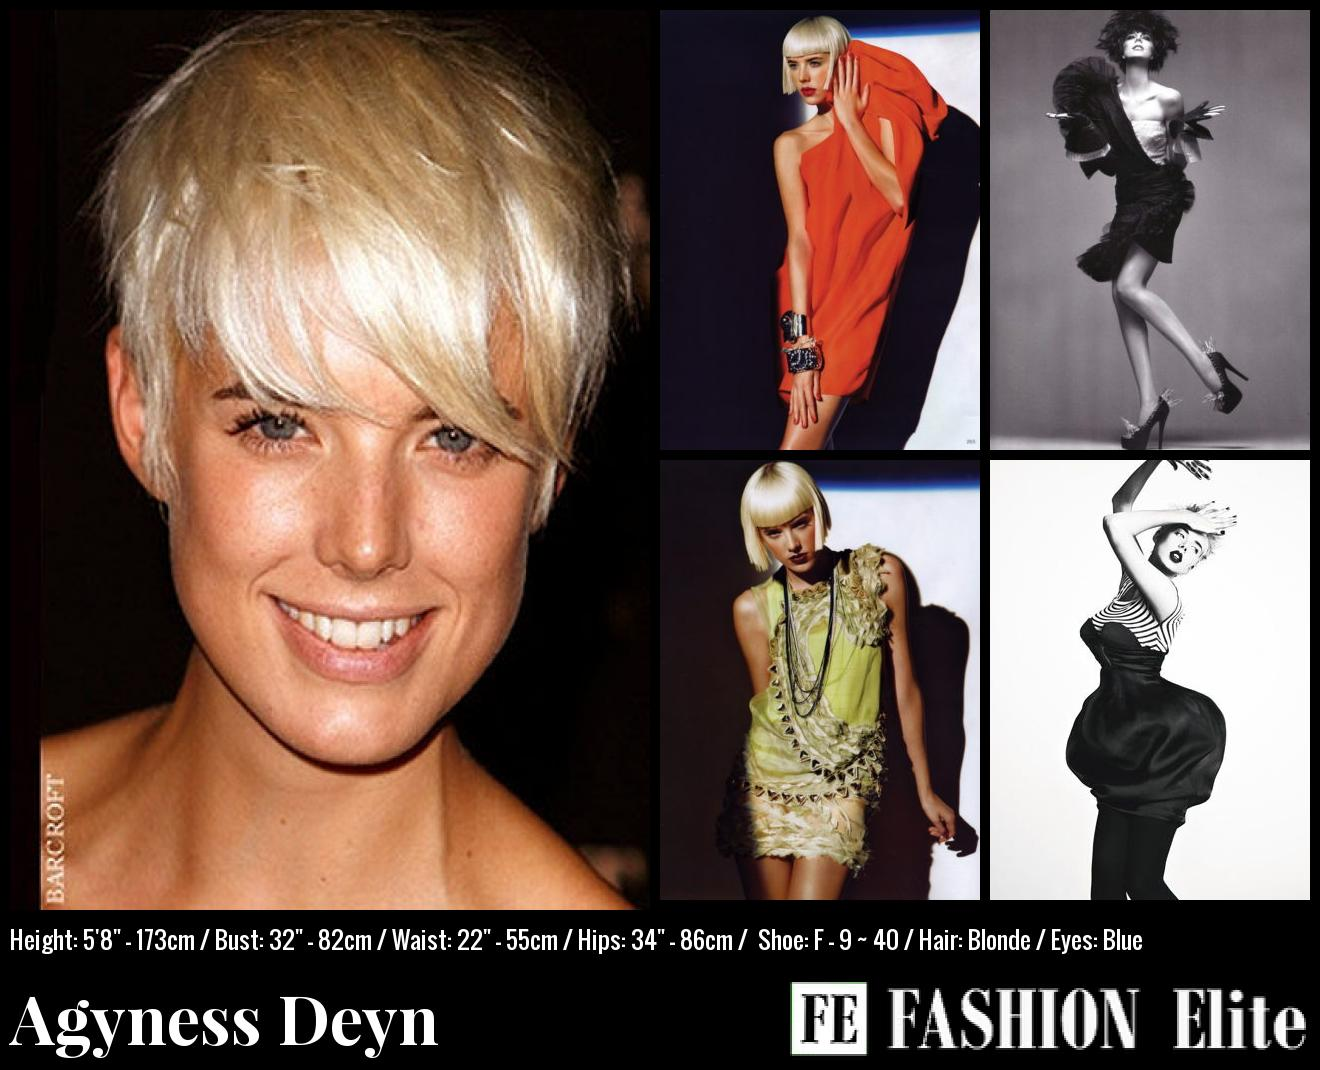 Agyness Deyn Comp Card